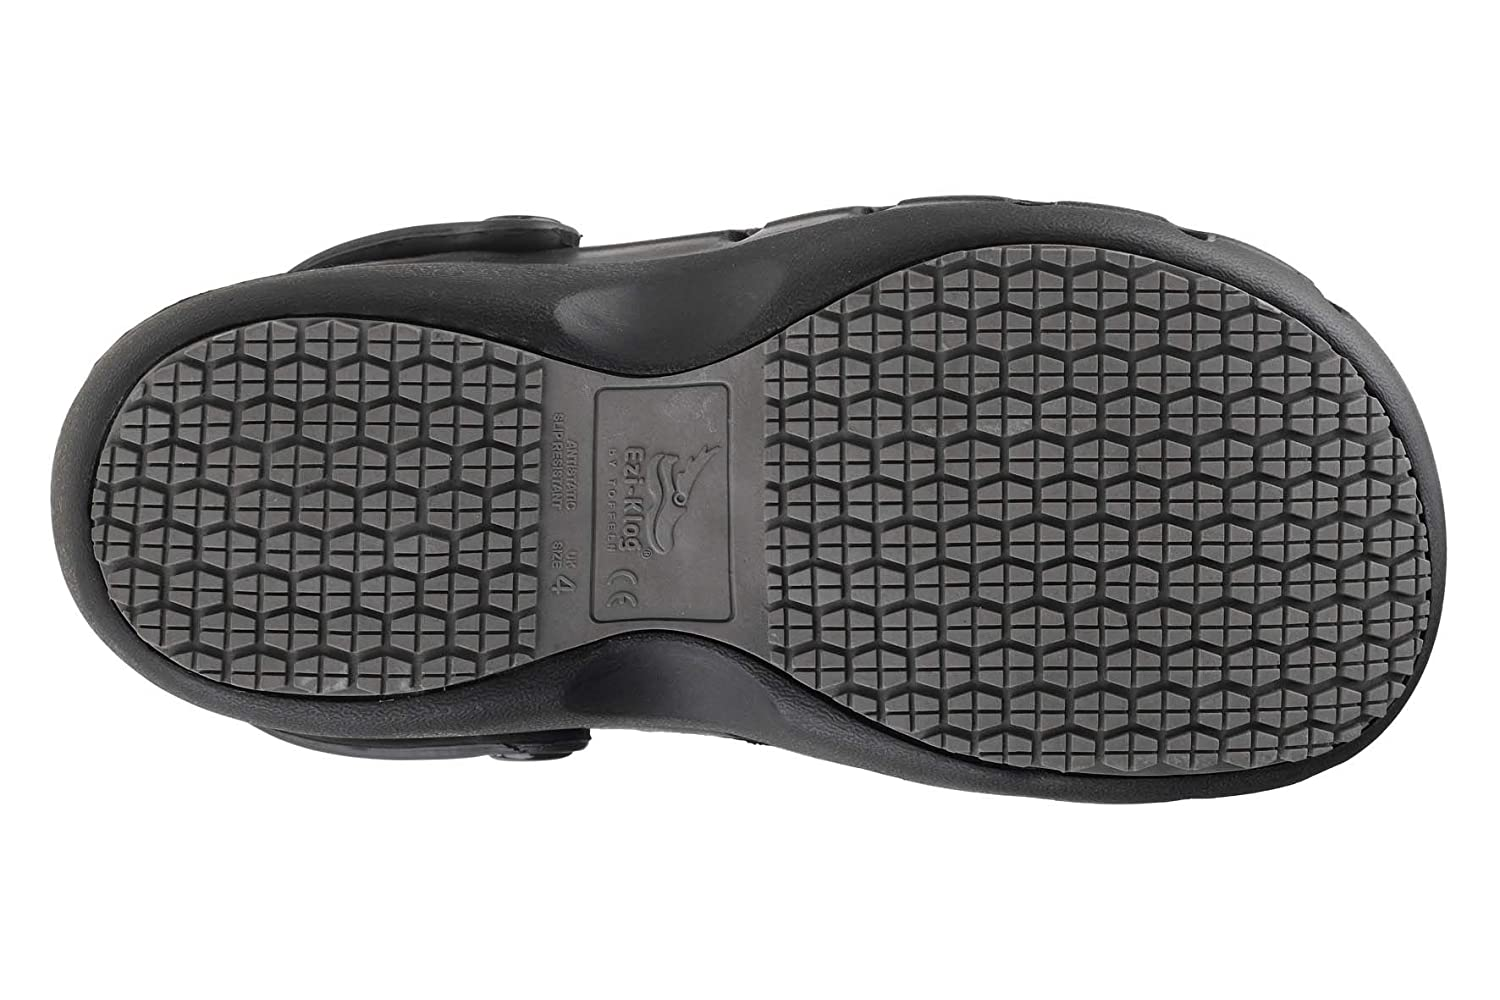 Perfect for Nurses and Doctors Black Lightweight Shock Absorbing Anti-Static Materials Slip Resistant Grip Excellent Breathability Comfortable Toffeln EziKlog Clogs Grip-Safe Sole